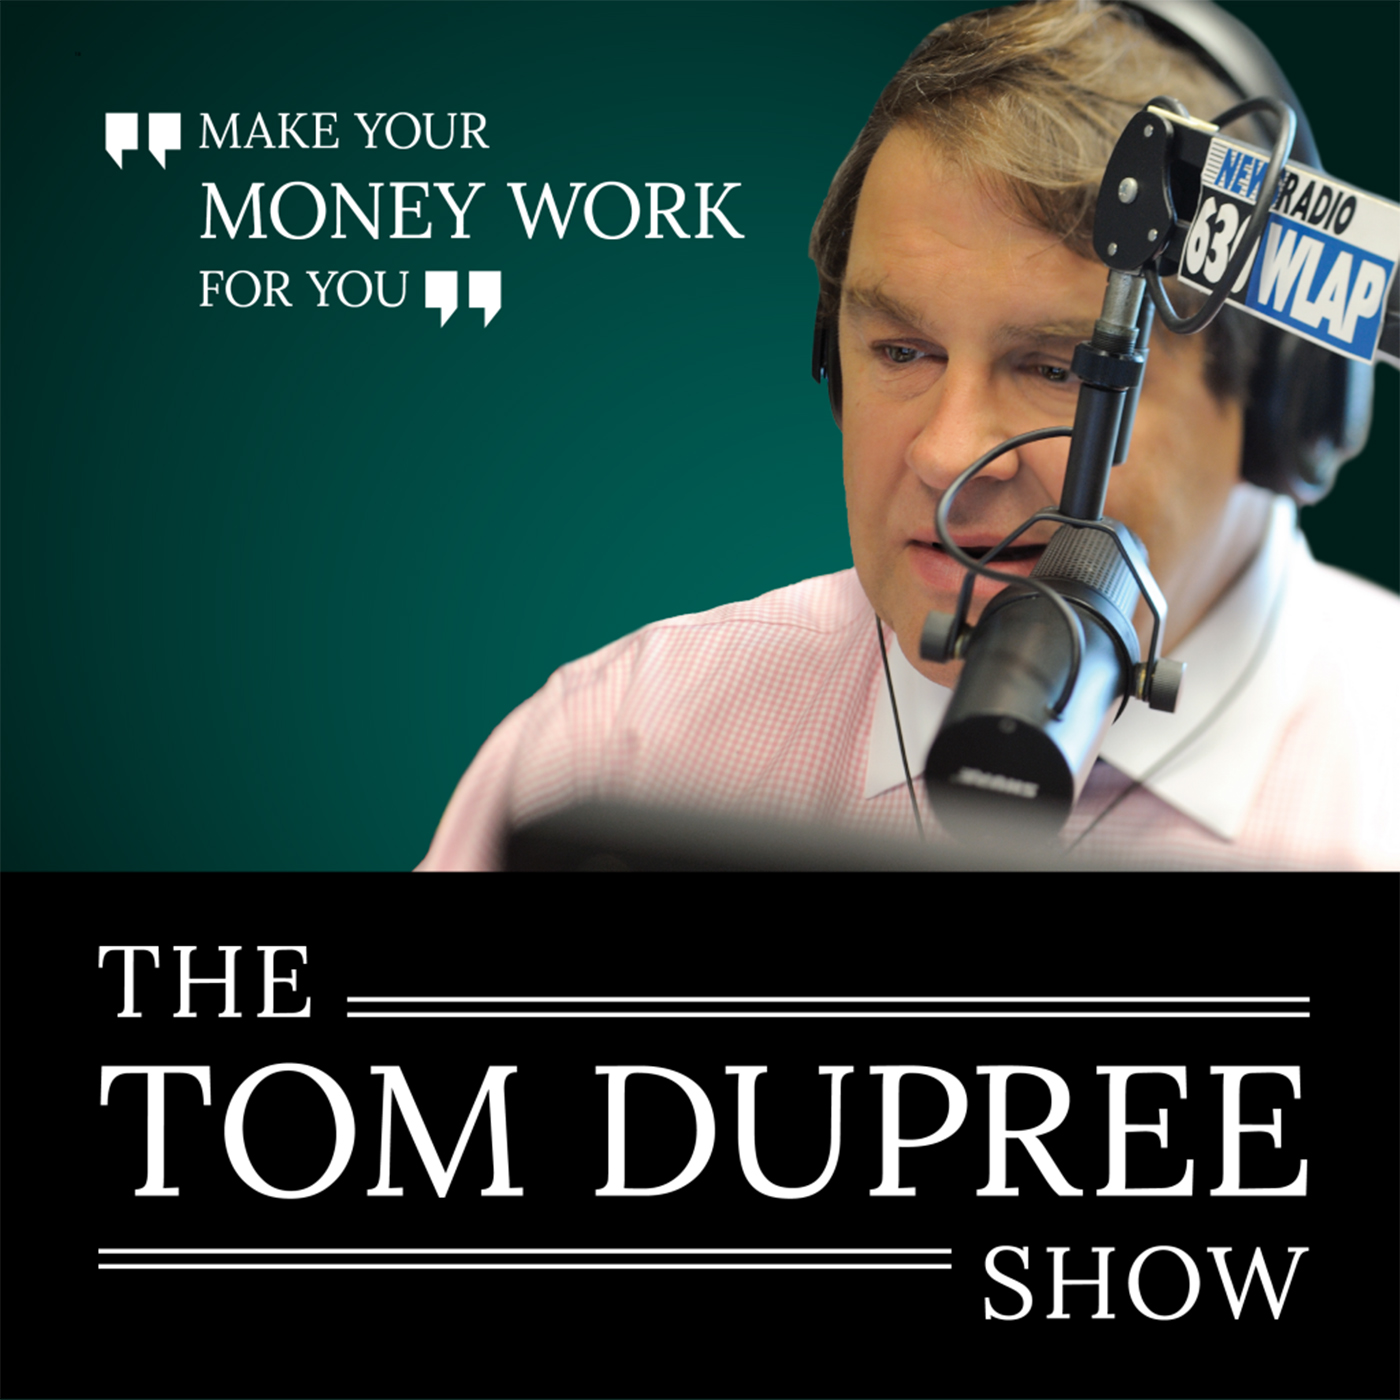 The Tom Dupree Show